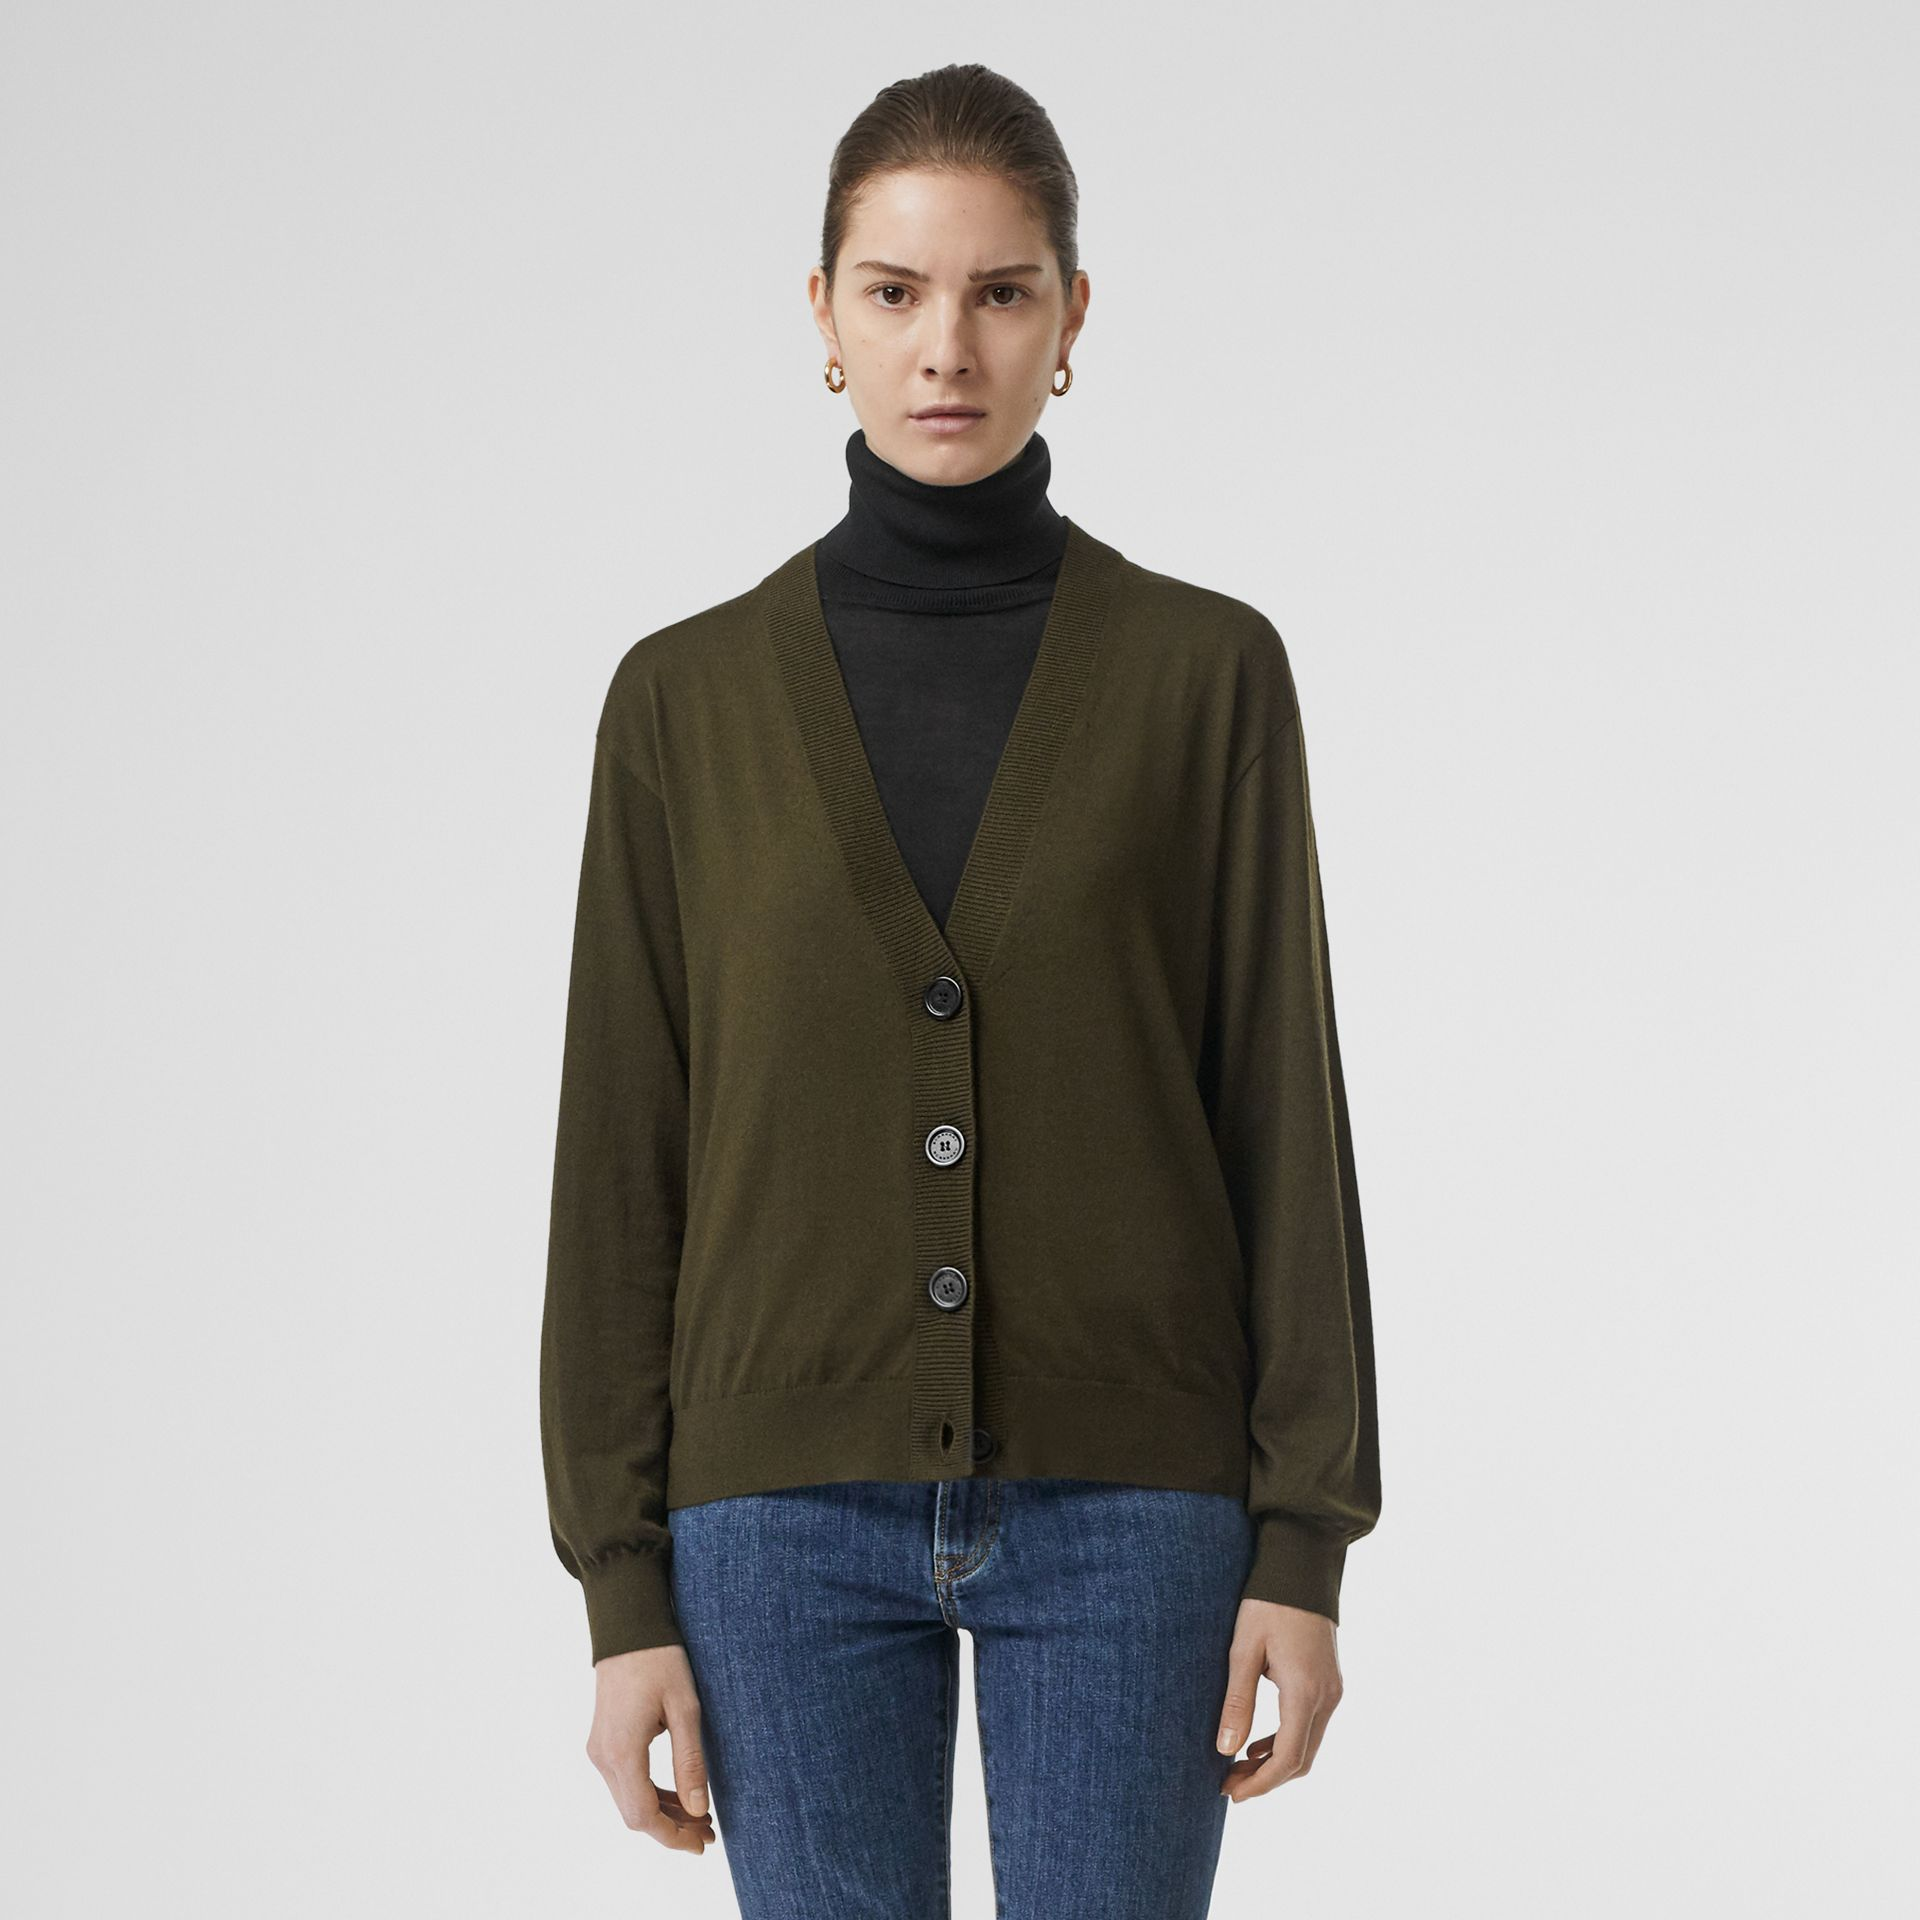 Vintage Check Detail Merino Wool Cardigan in Dark Olive - Women | Burberry - gallery image 5